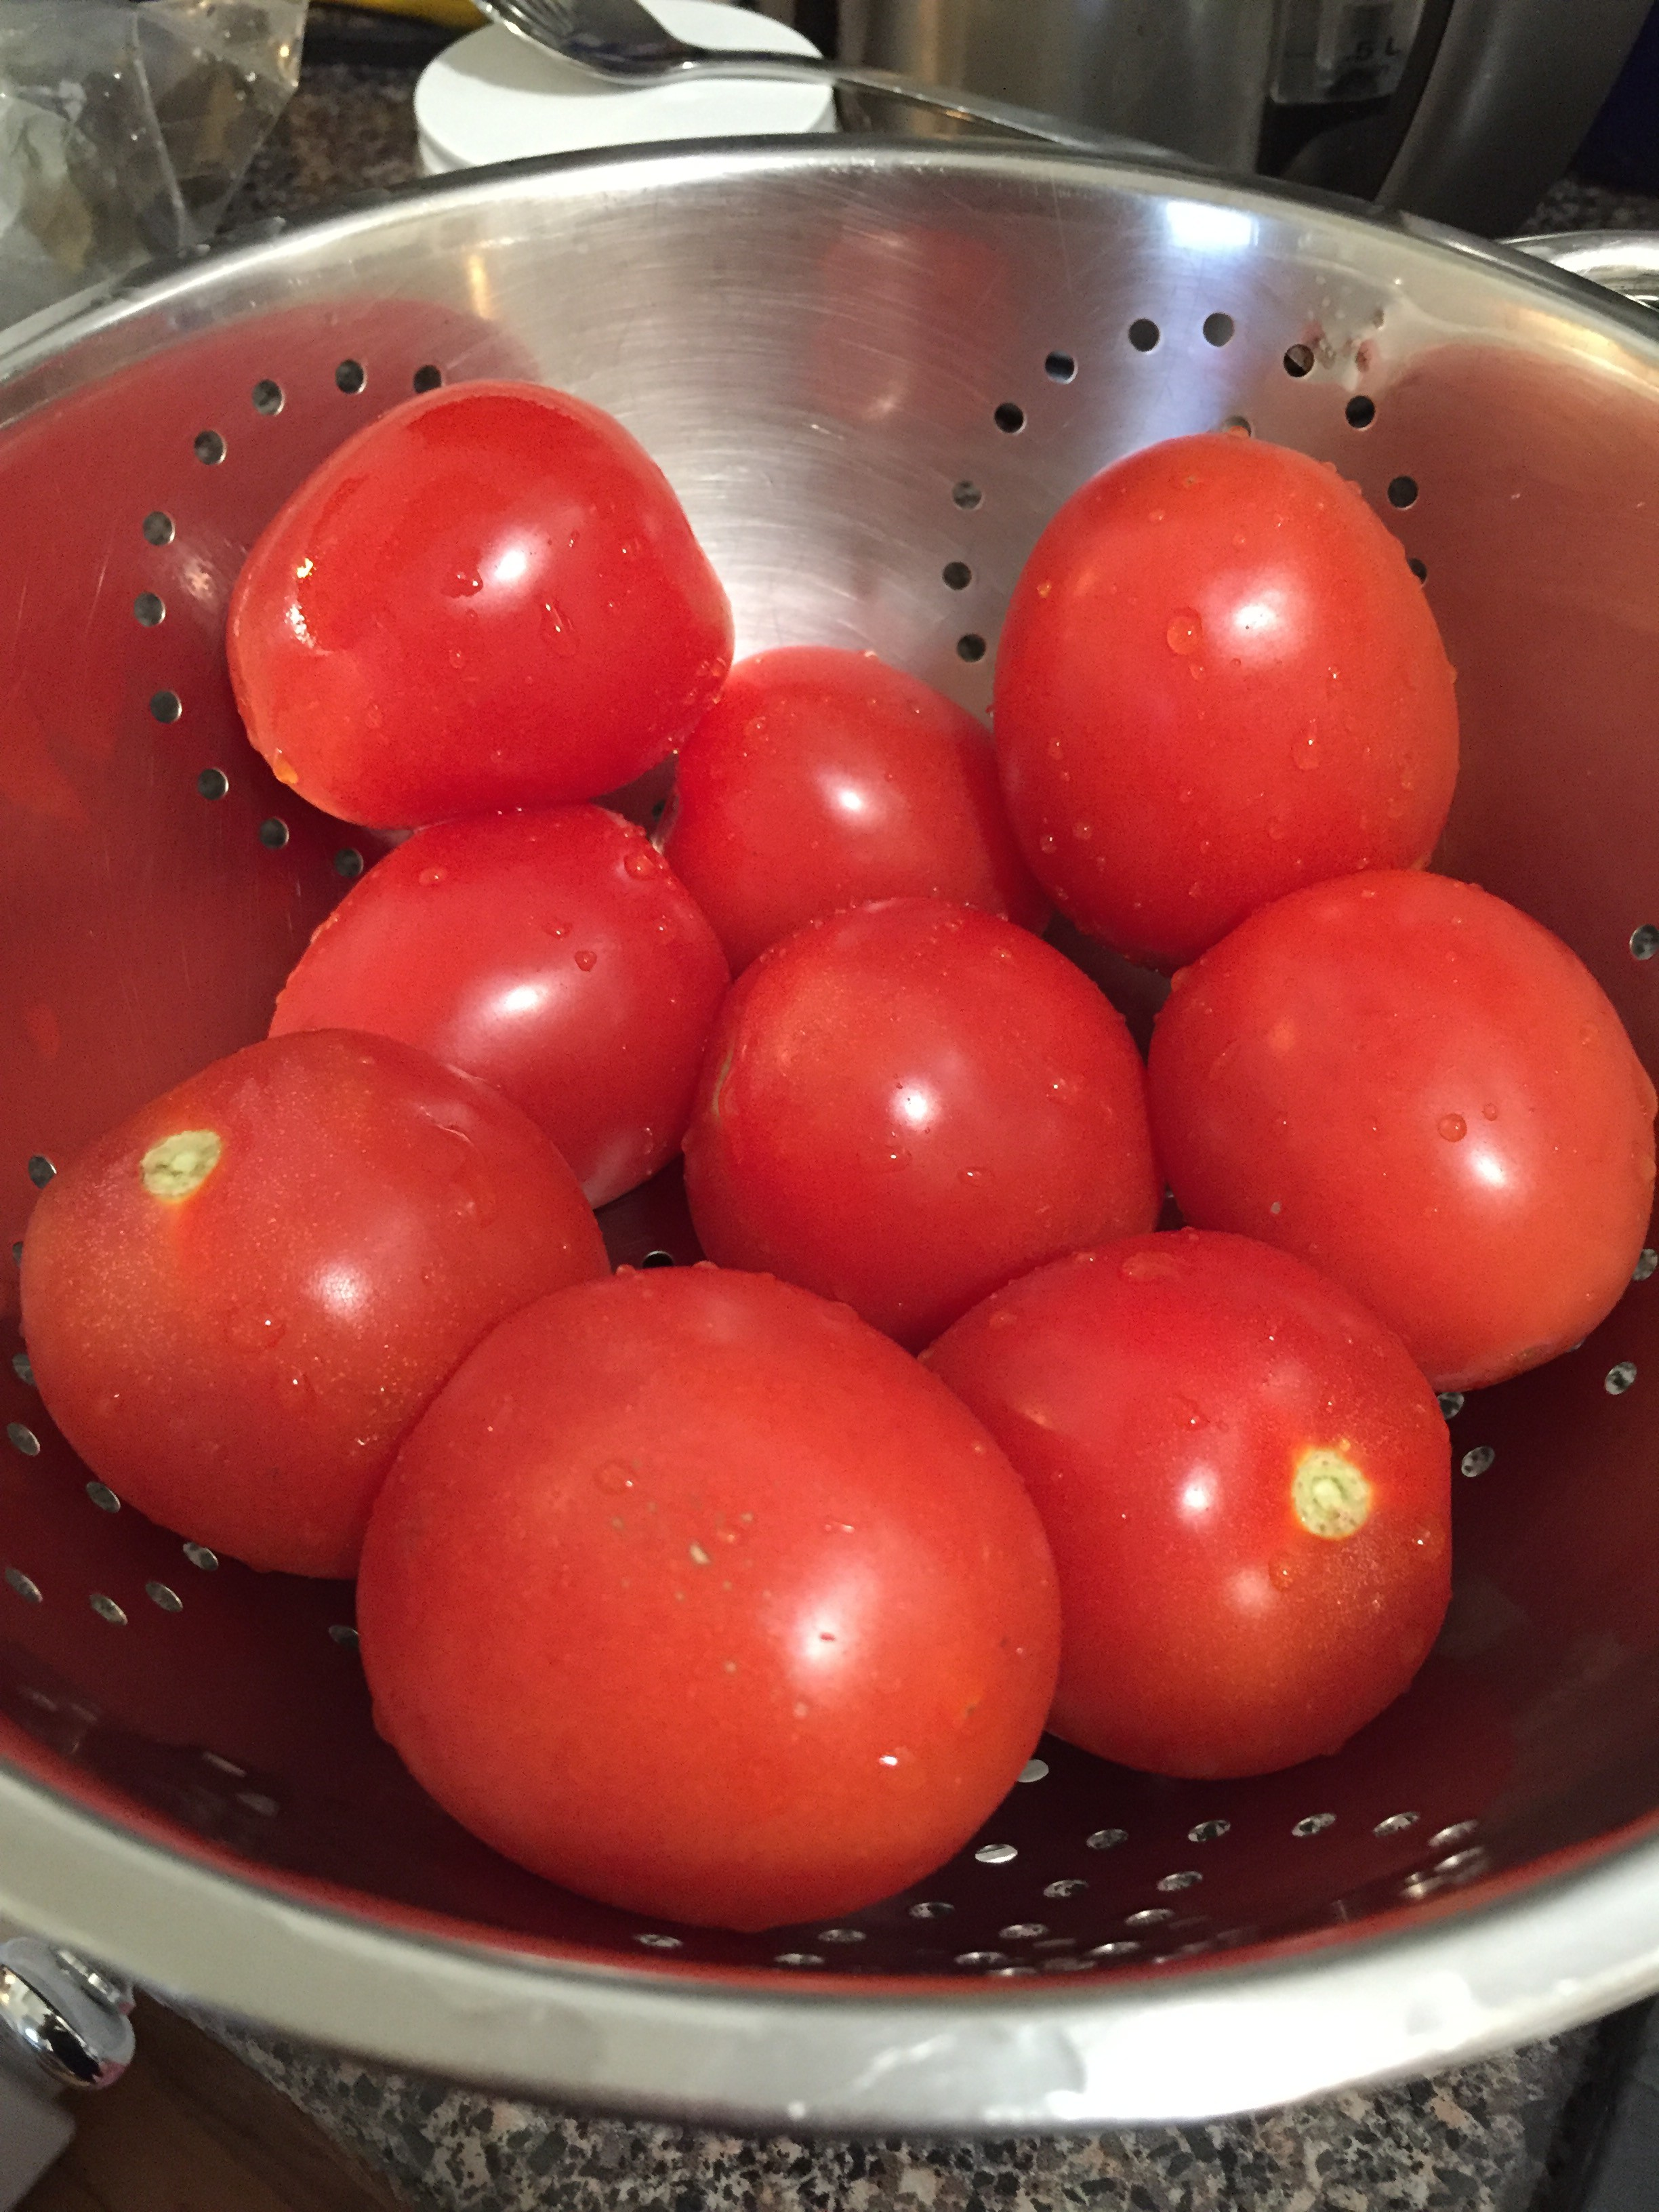 Signs of summer: fresh, red tomatoes